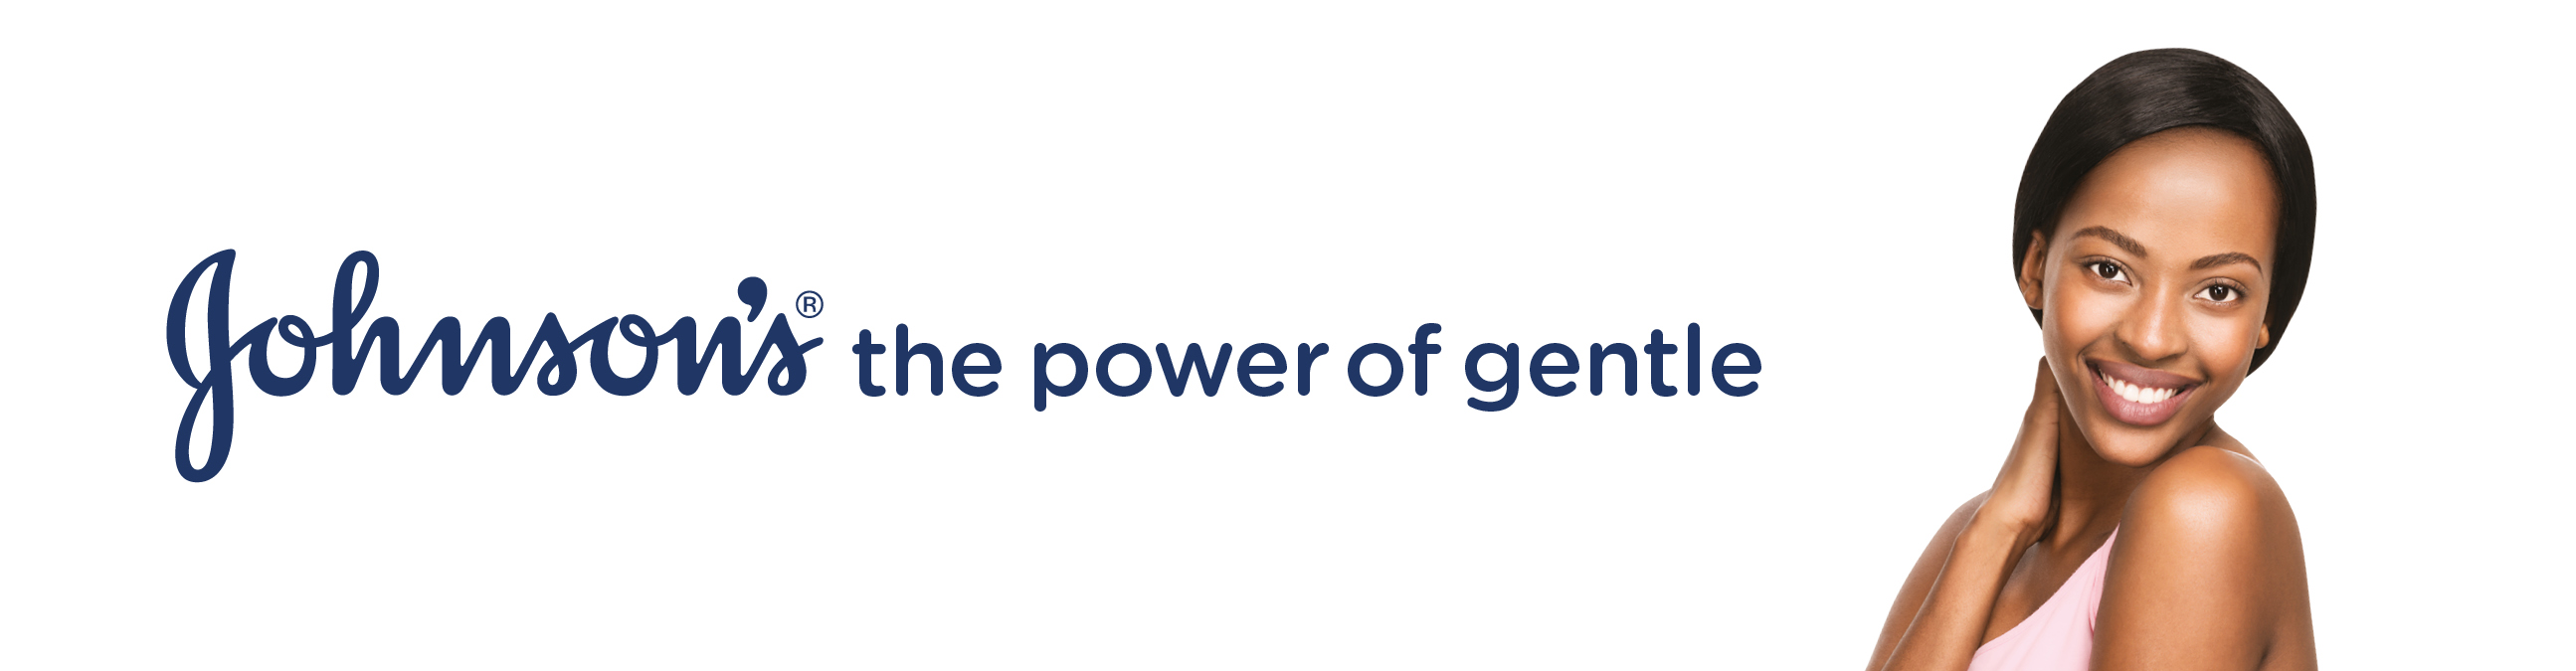 Johnson's the power of gentle image